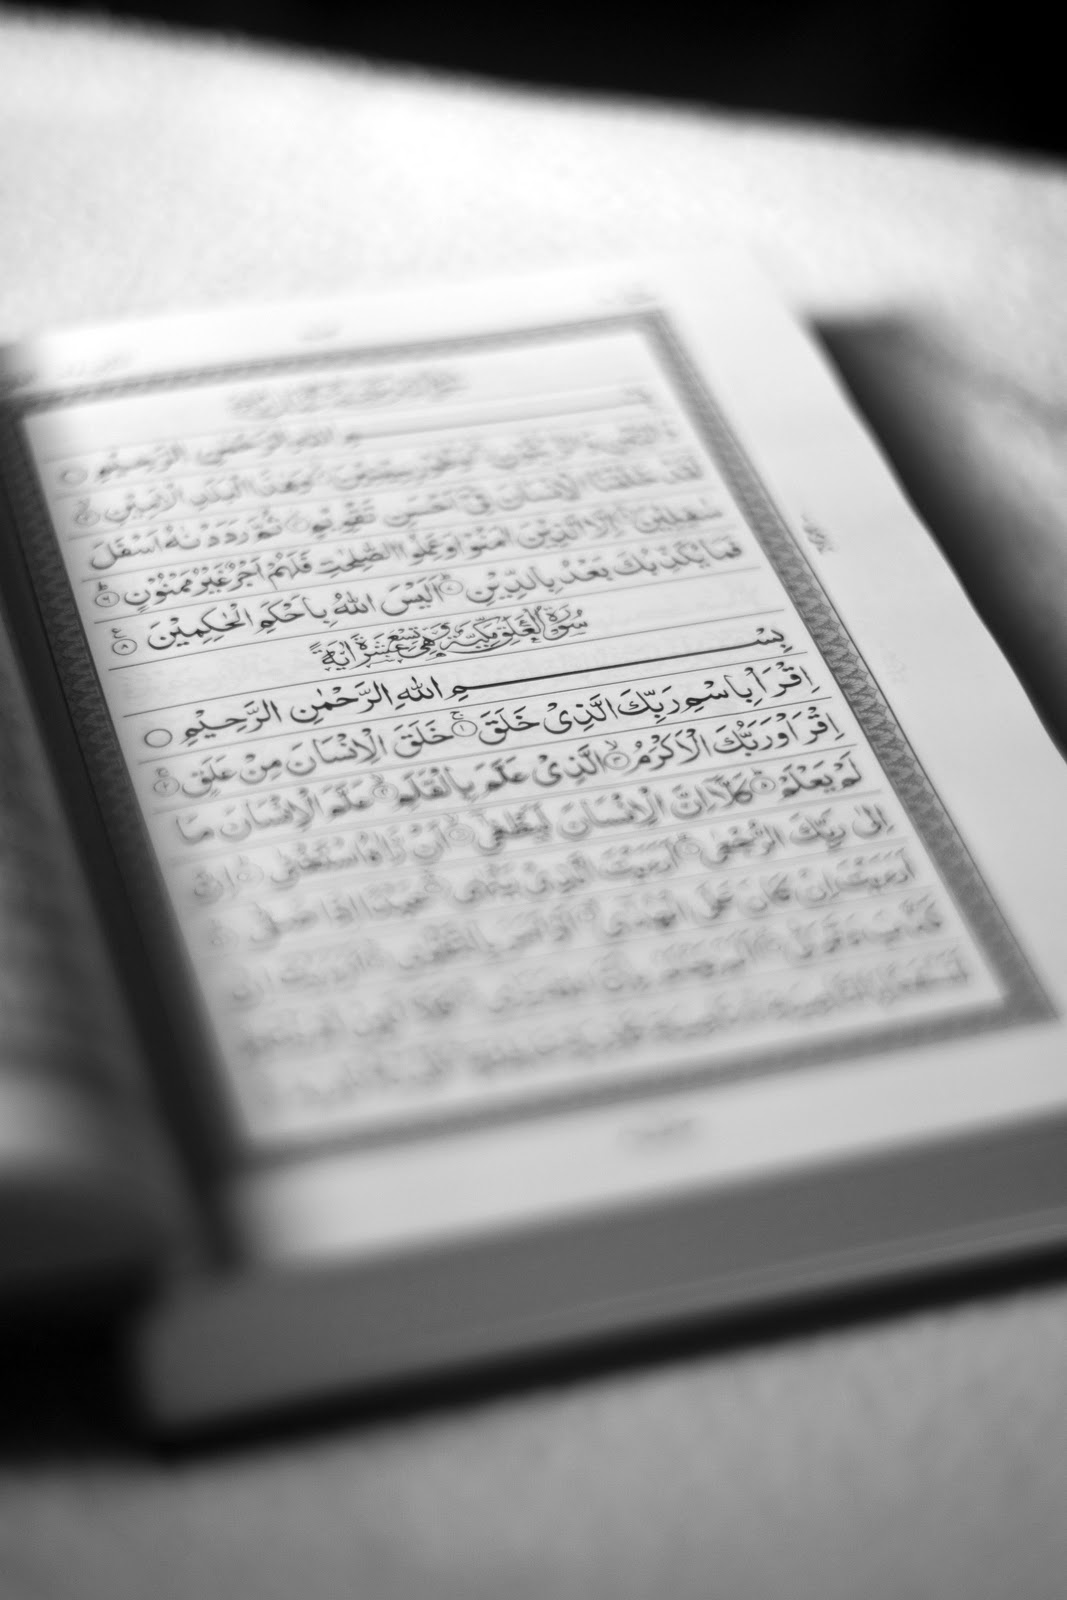 SCID Photography Journal: The Holy Al-Quran : Iqra'